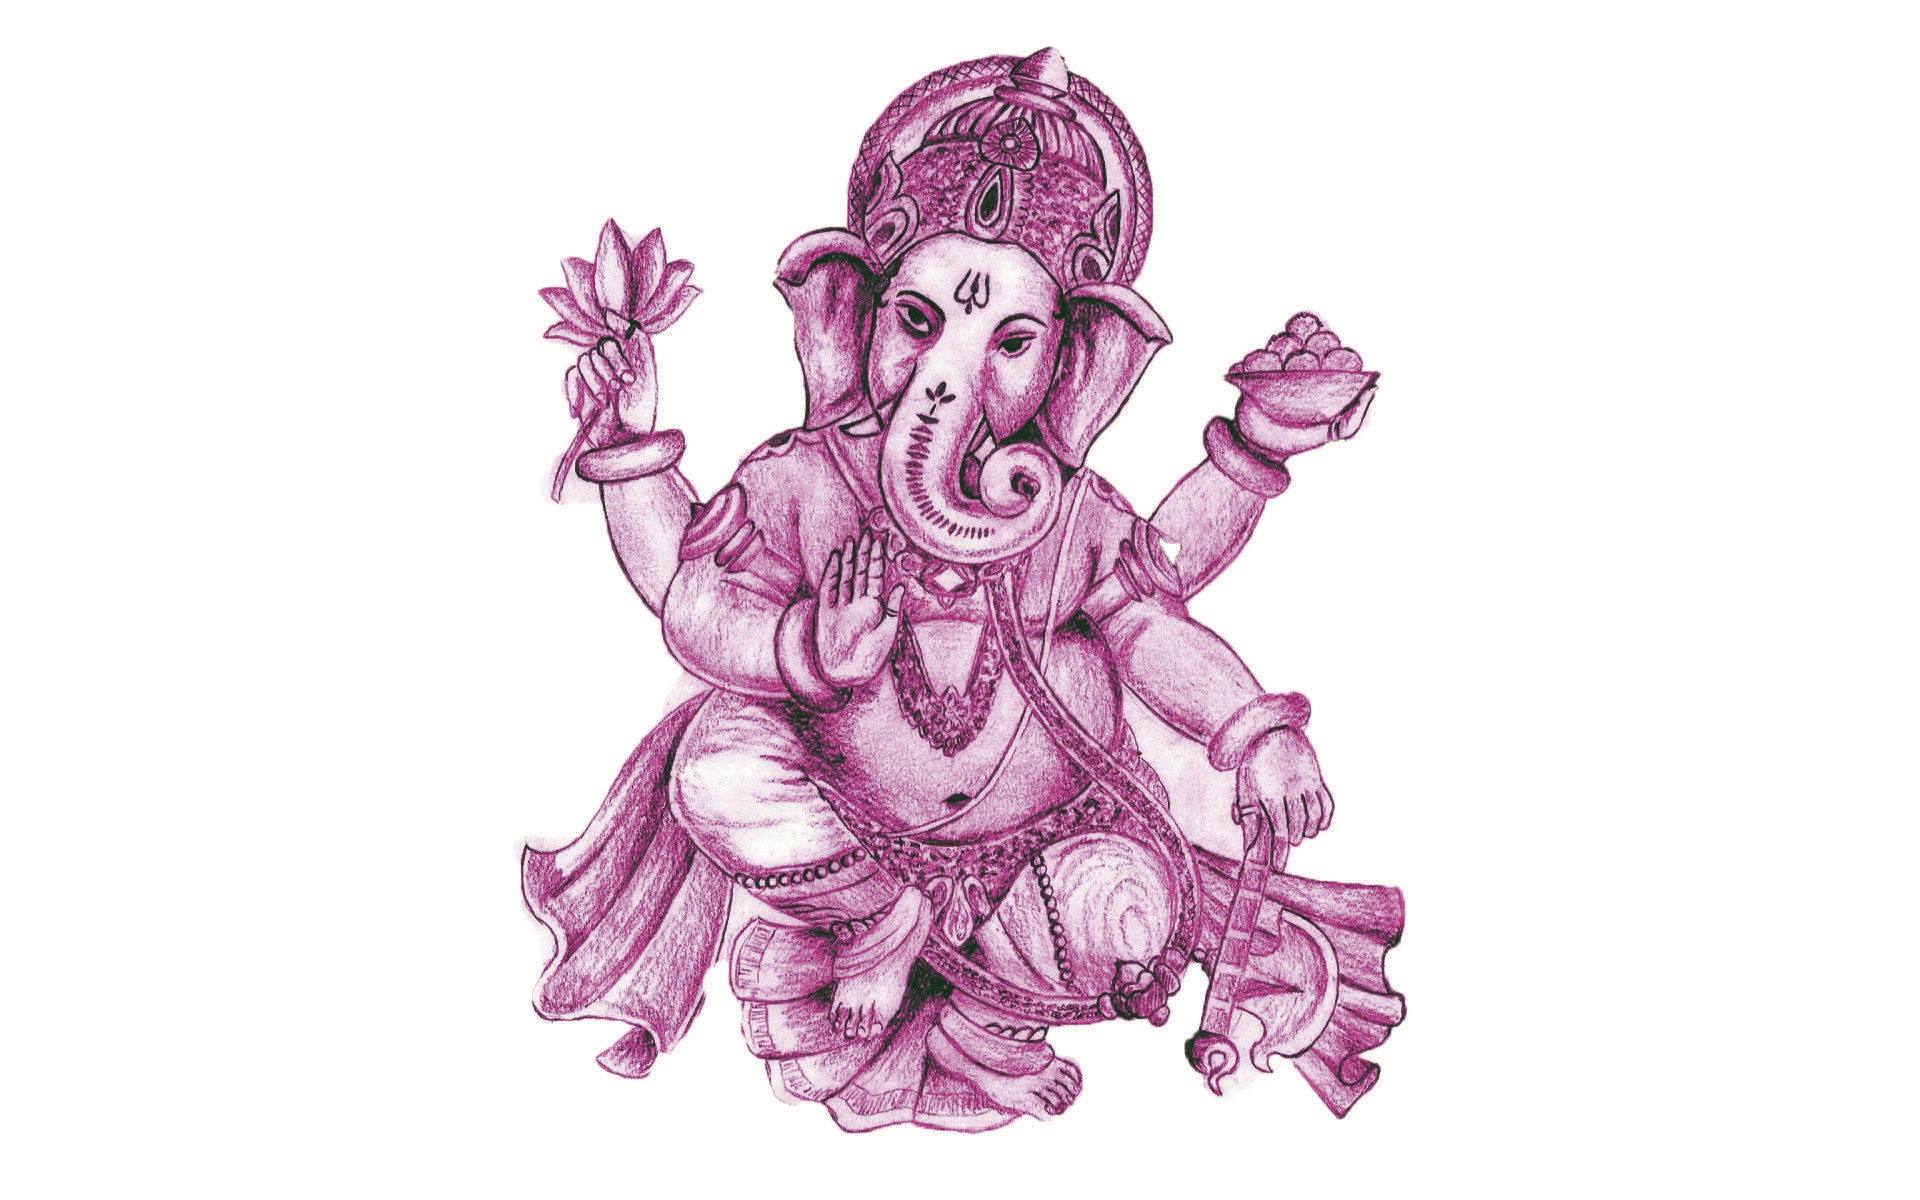 Lord Ganesh Drawing At Getdrawings Com Free For Personal Use Lord